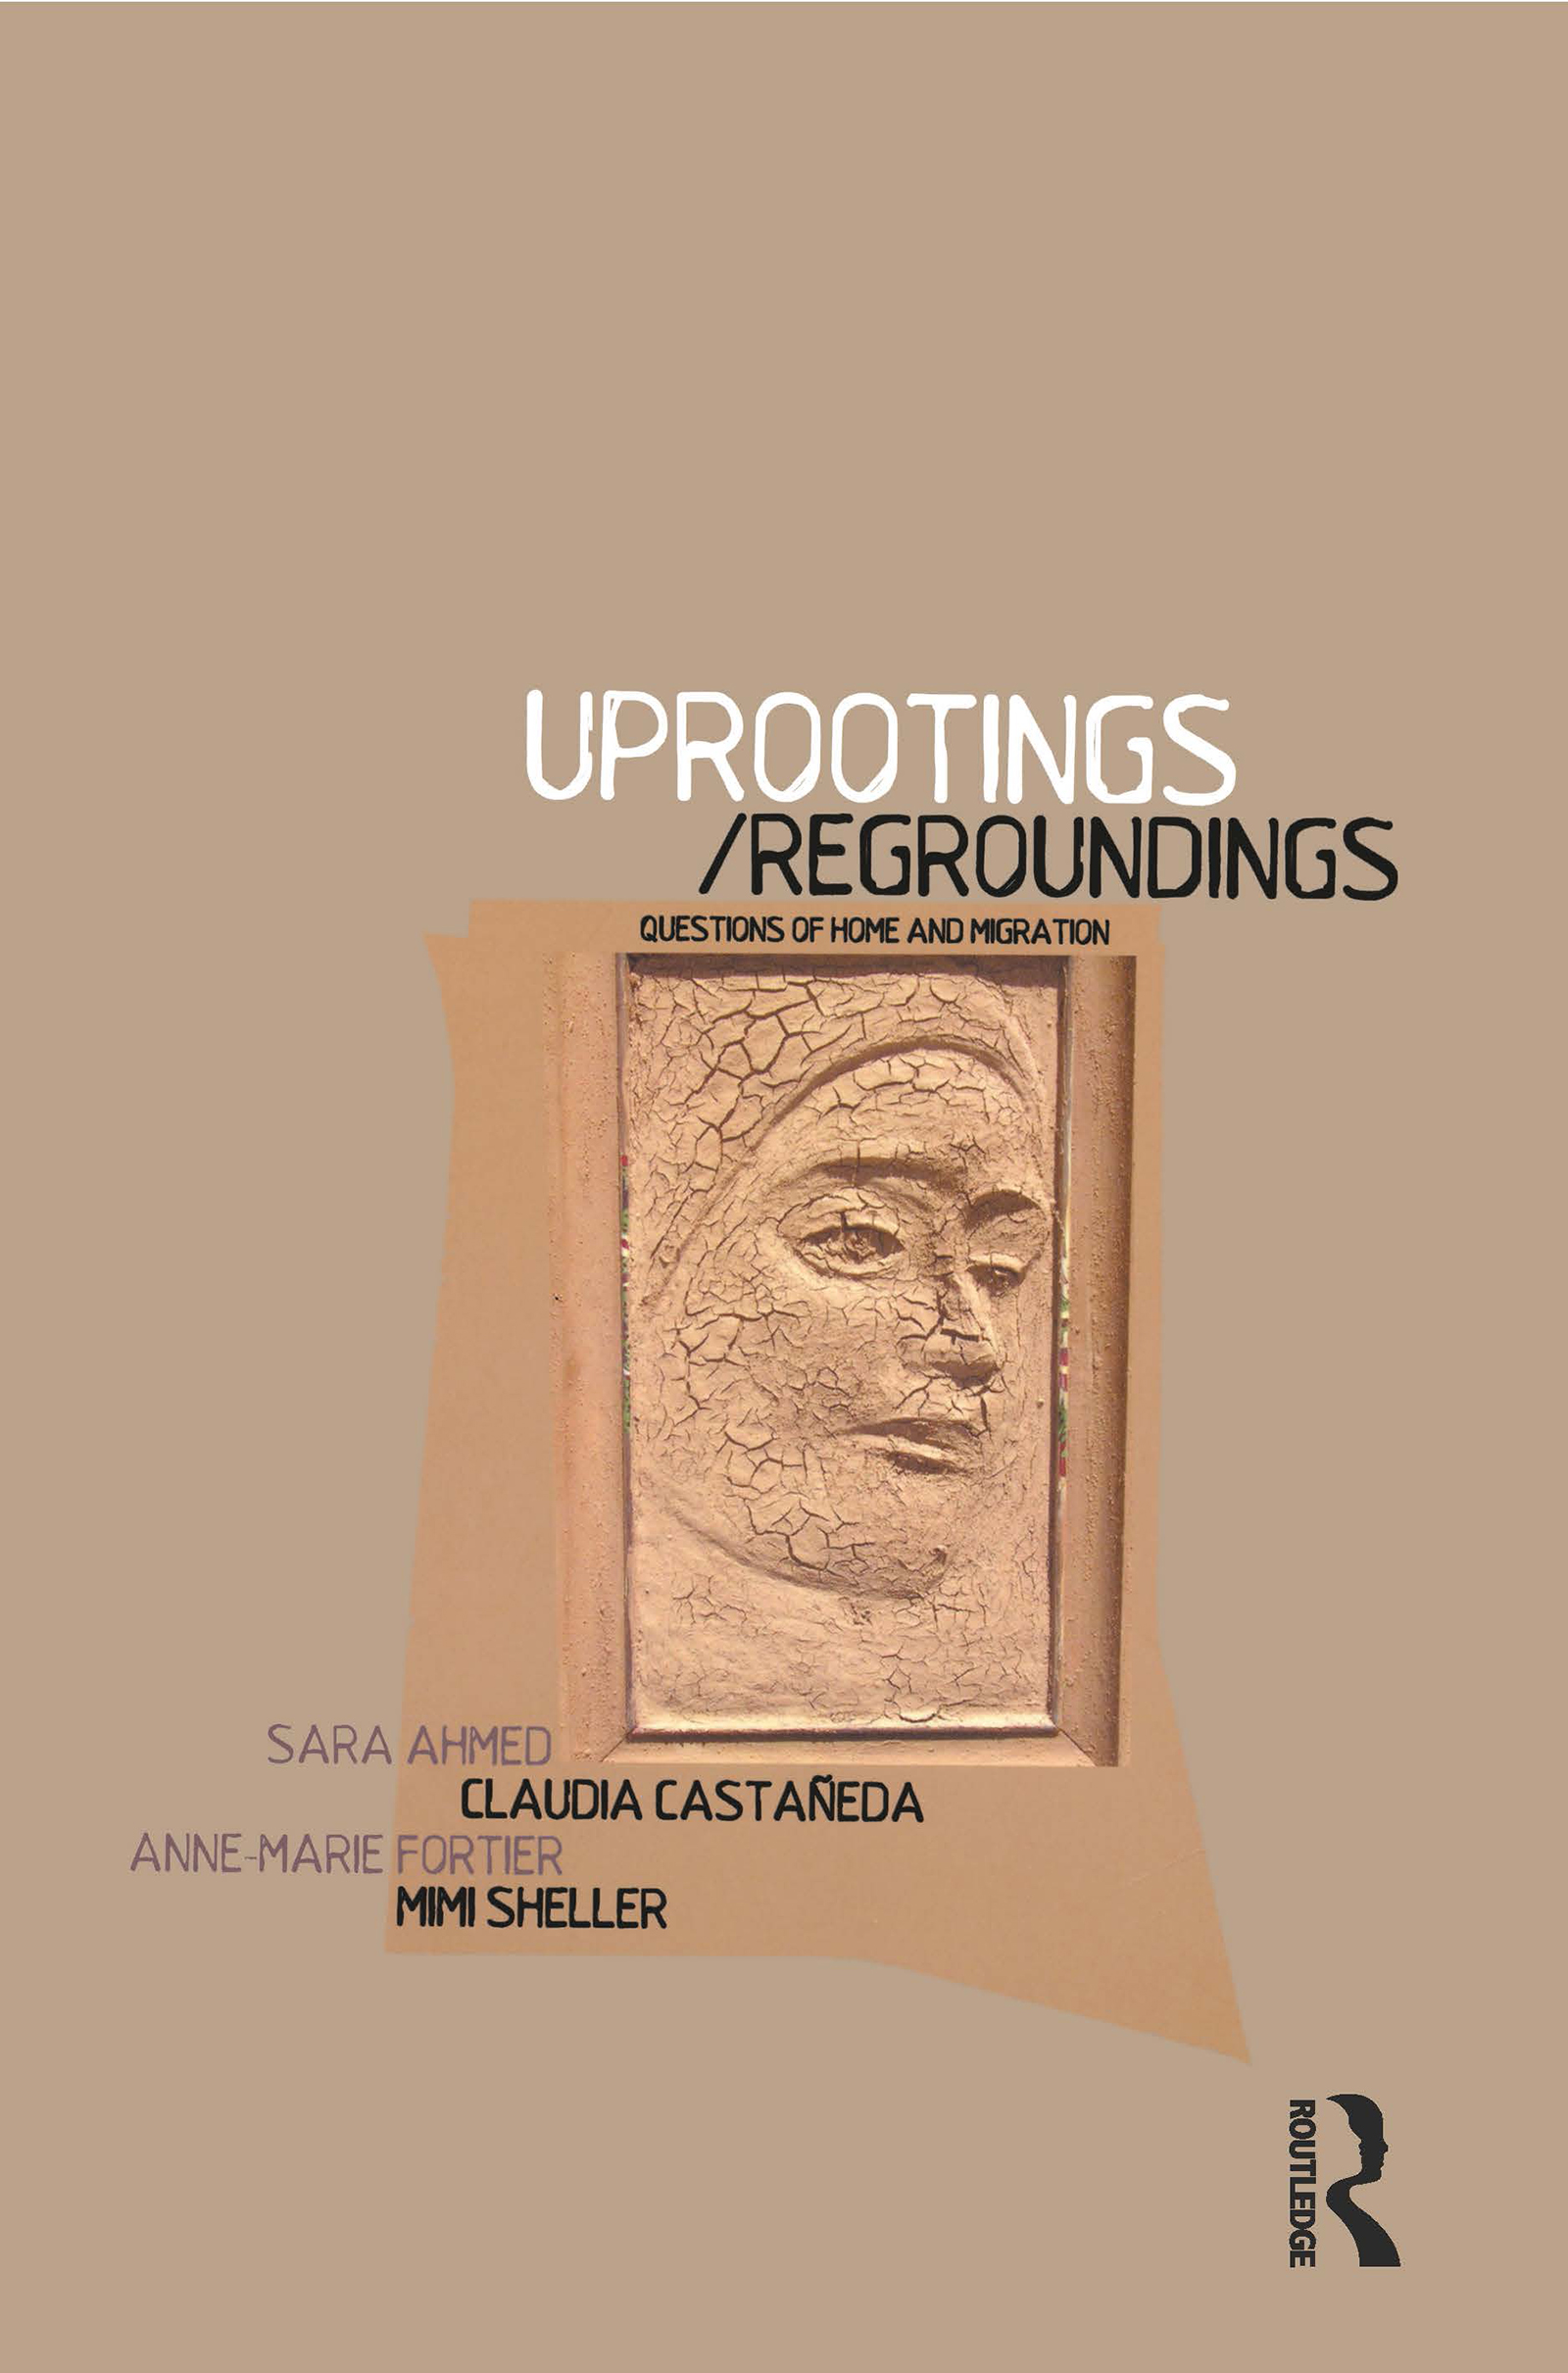 Uprootings/Regroundings